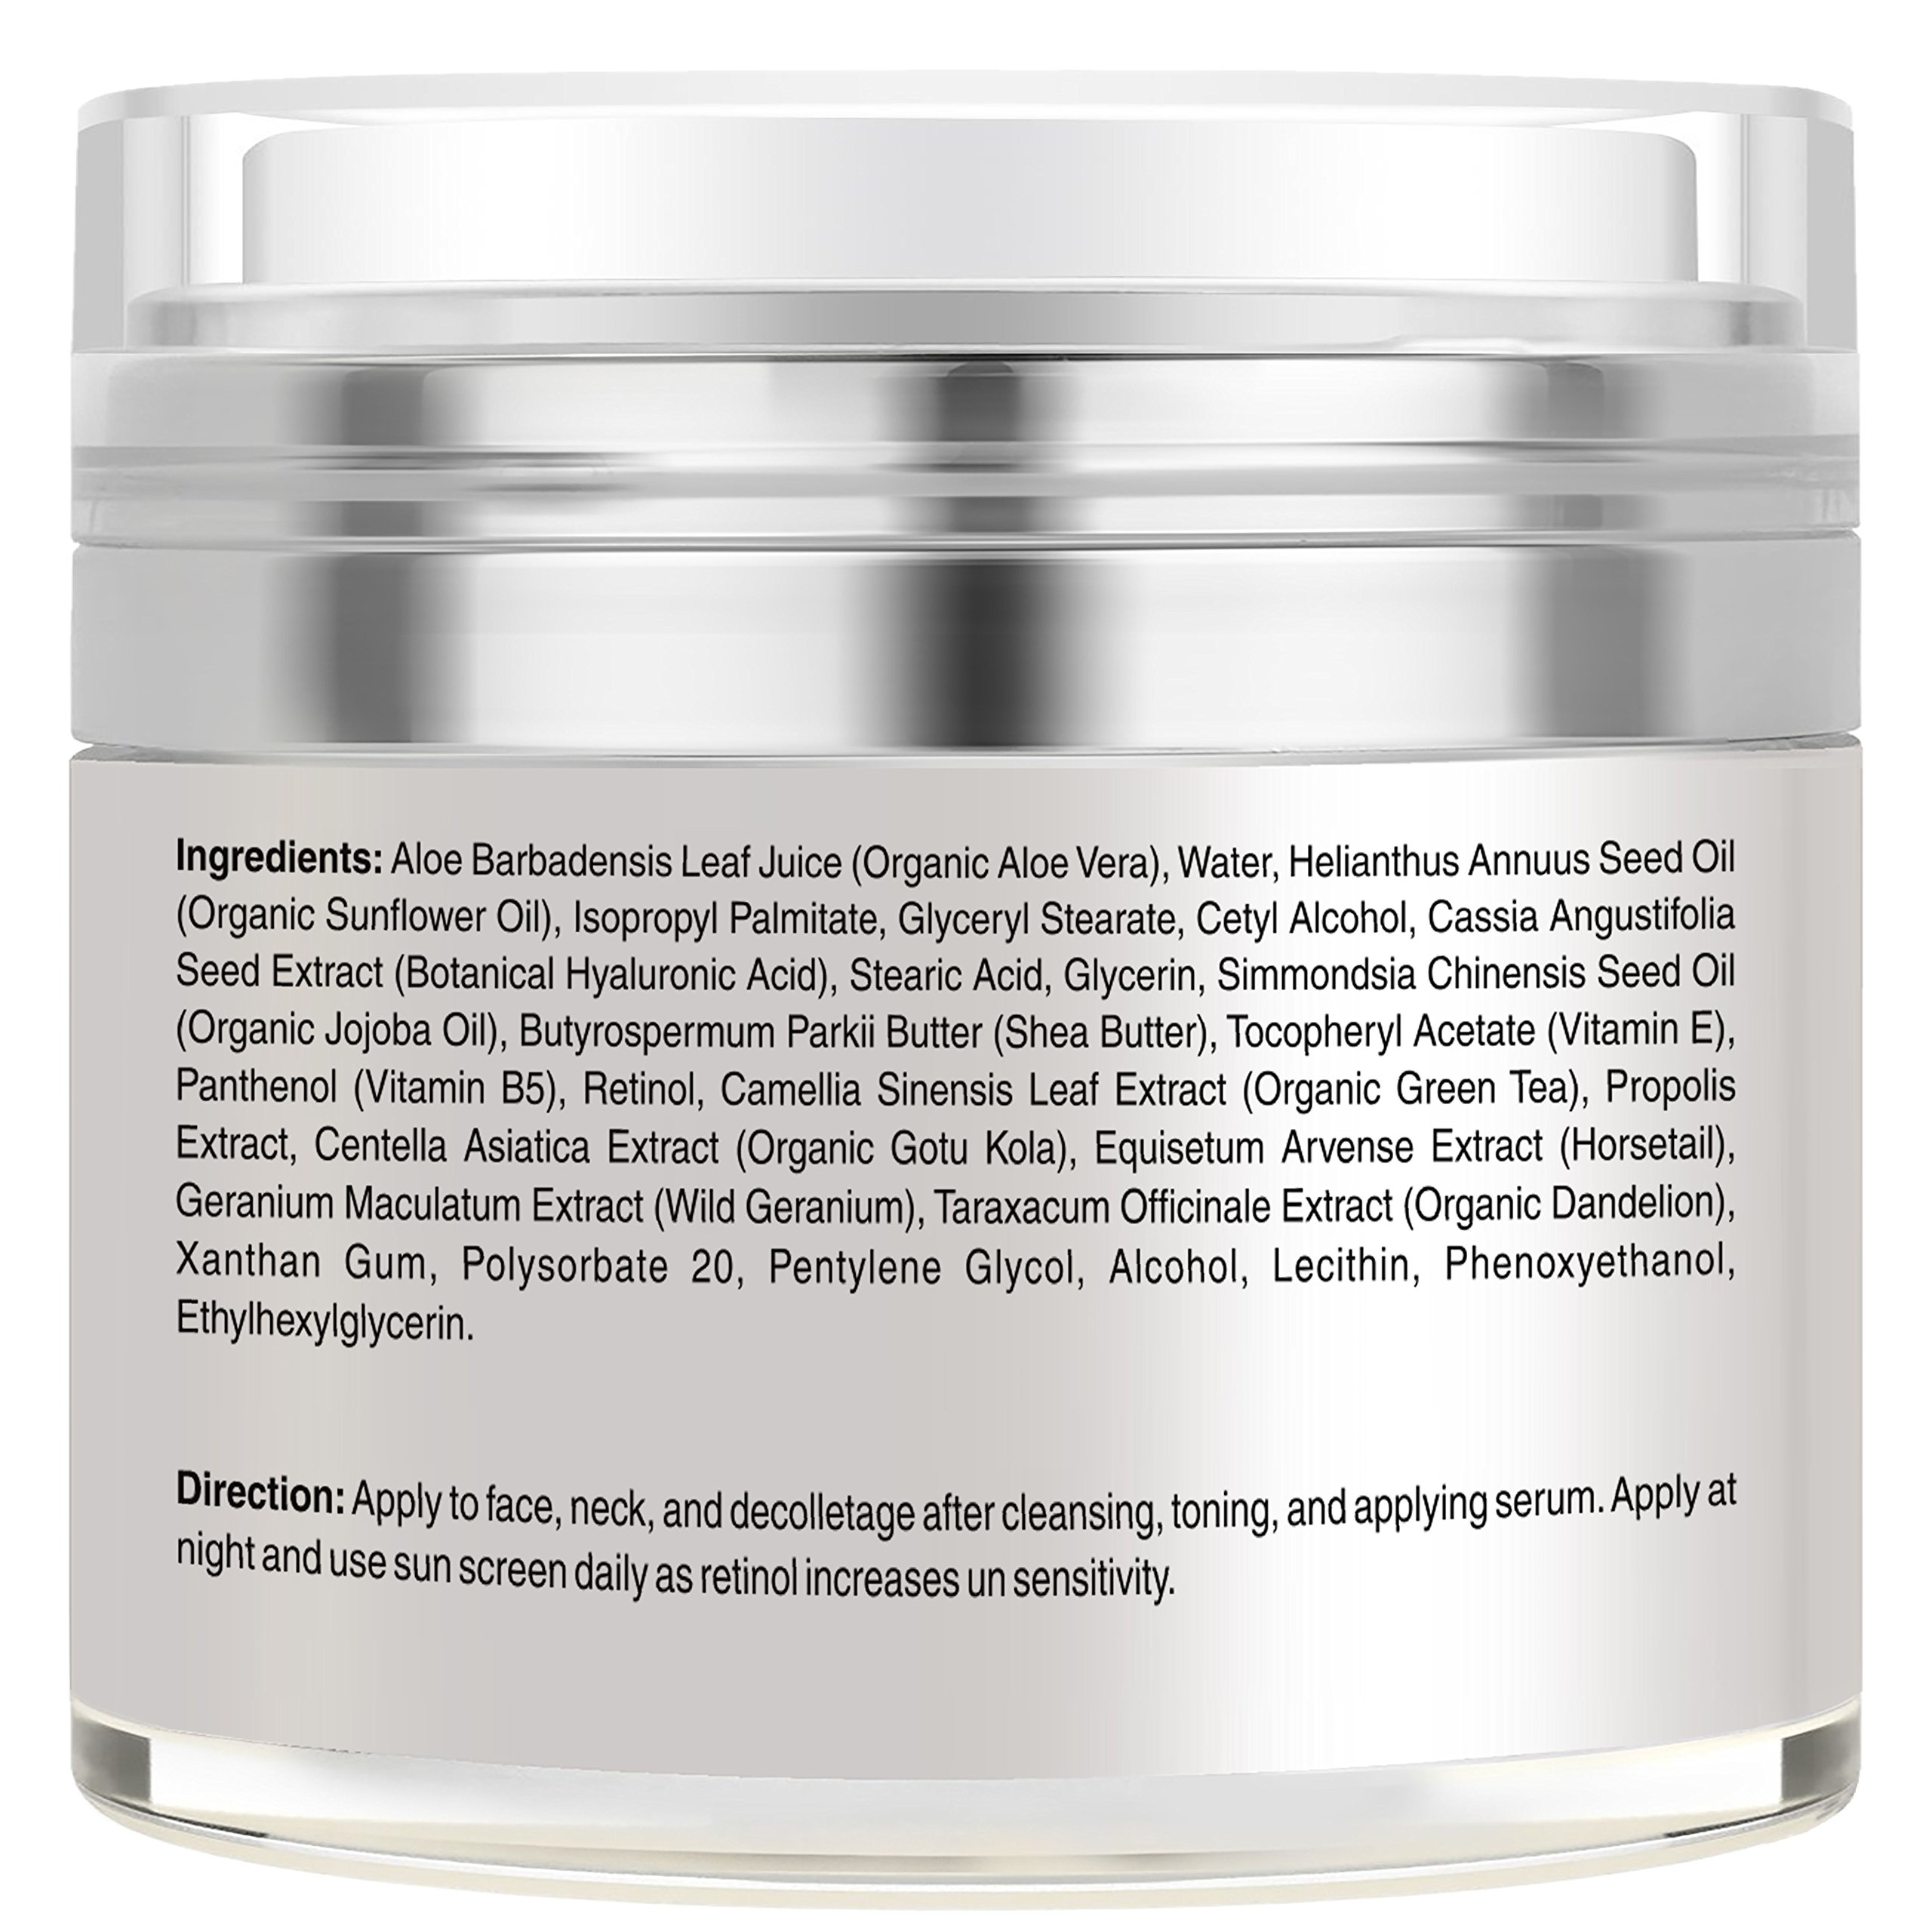 Retinol Moisturizer Cream for Face and Eye Area - Made in USA - with Hyaluronic Acid, Vitamin E - Best Day and Night Anti Aging Formula to Reduce Wrinkles, Fine Lines & Even Skin Tone. by FineVine (Image #2)